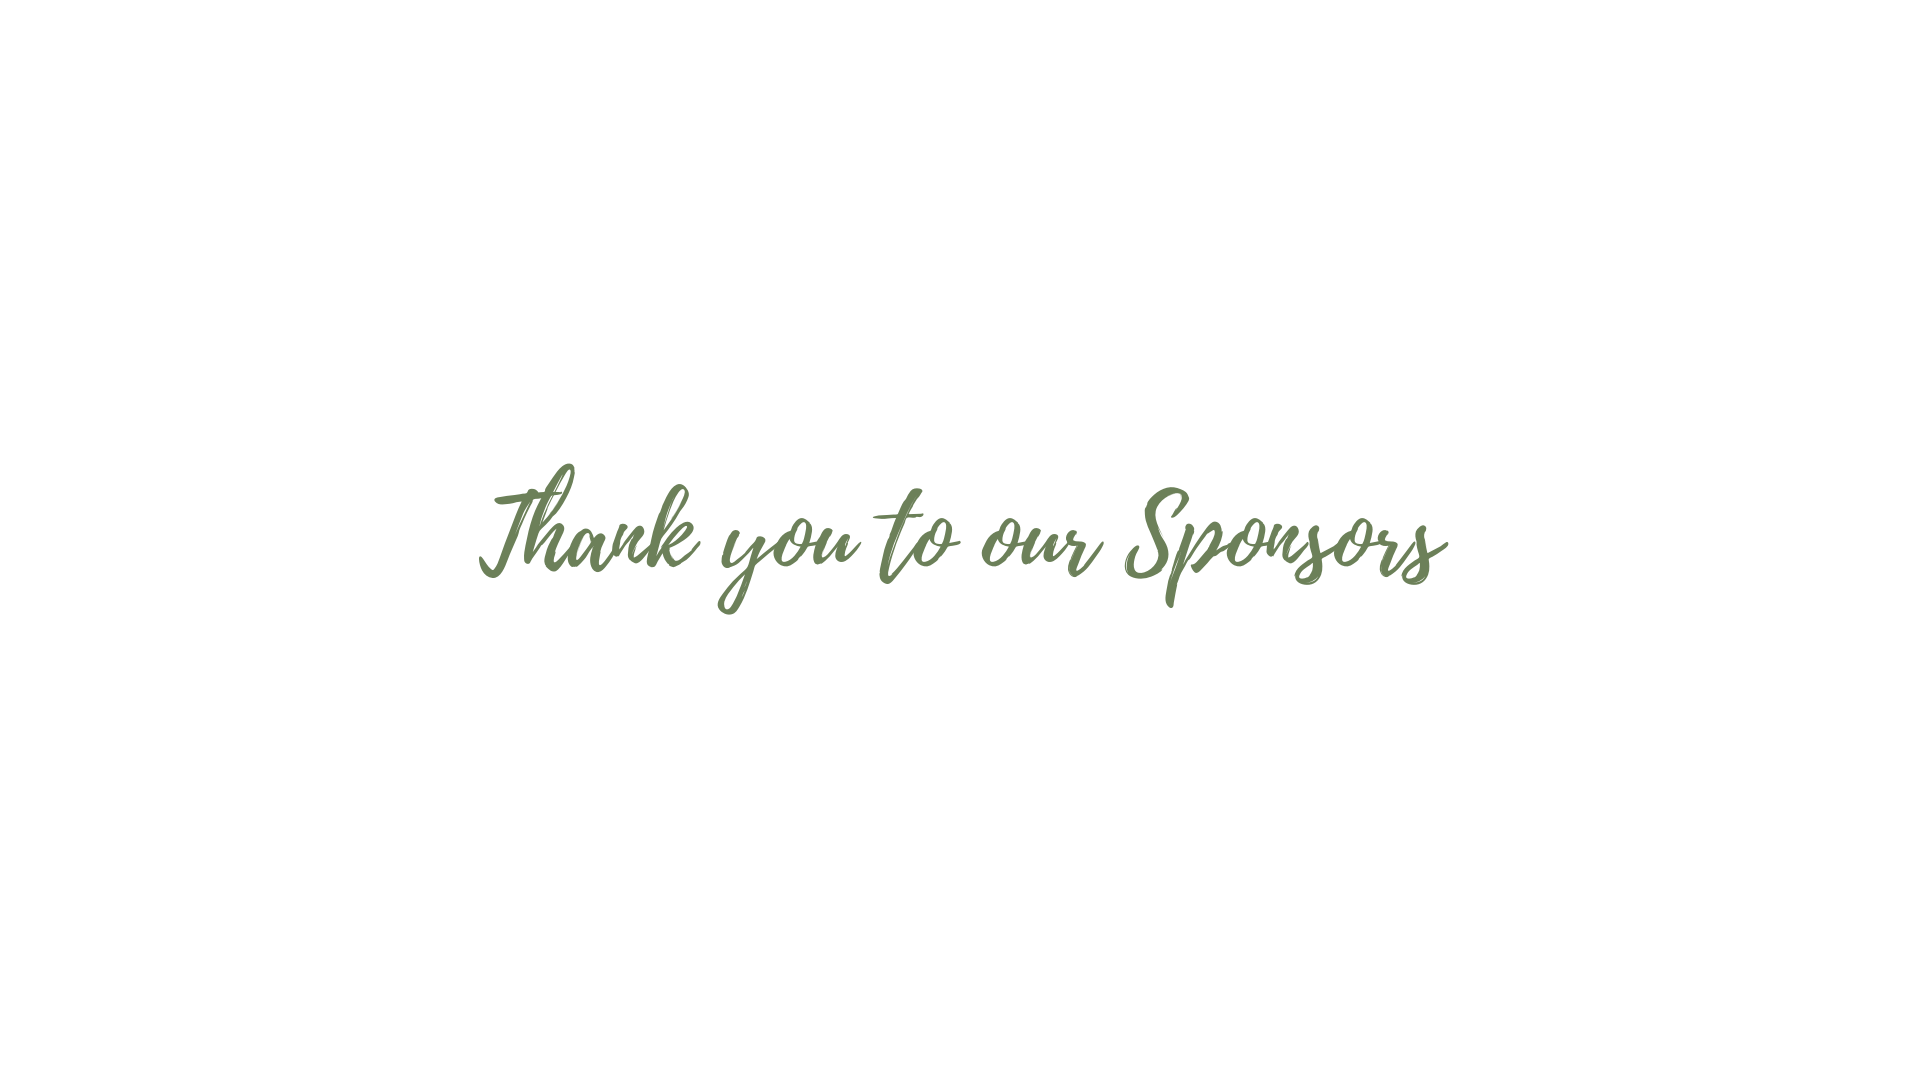 Thank you to our Sponsors.png